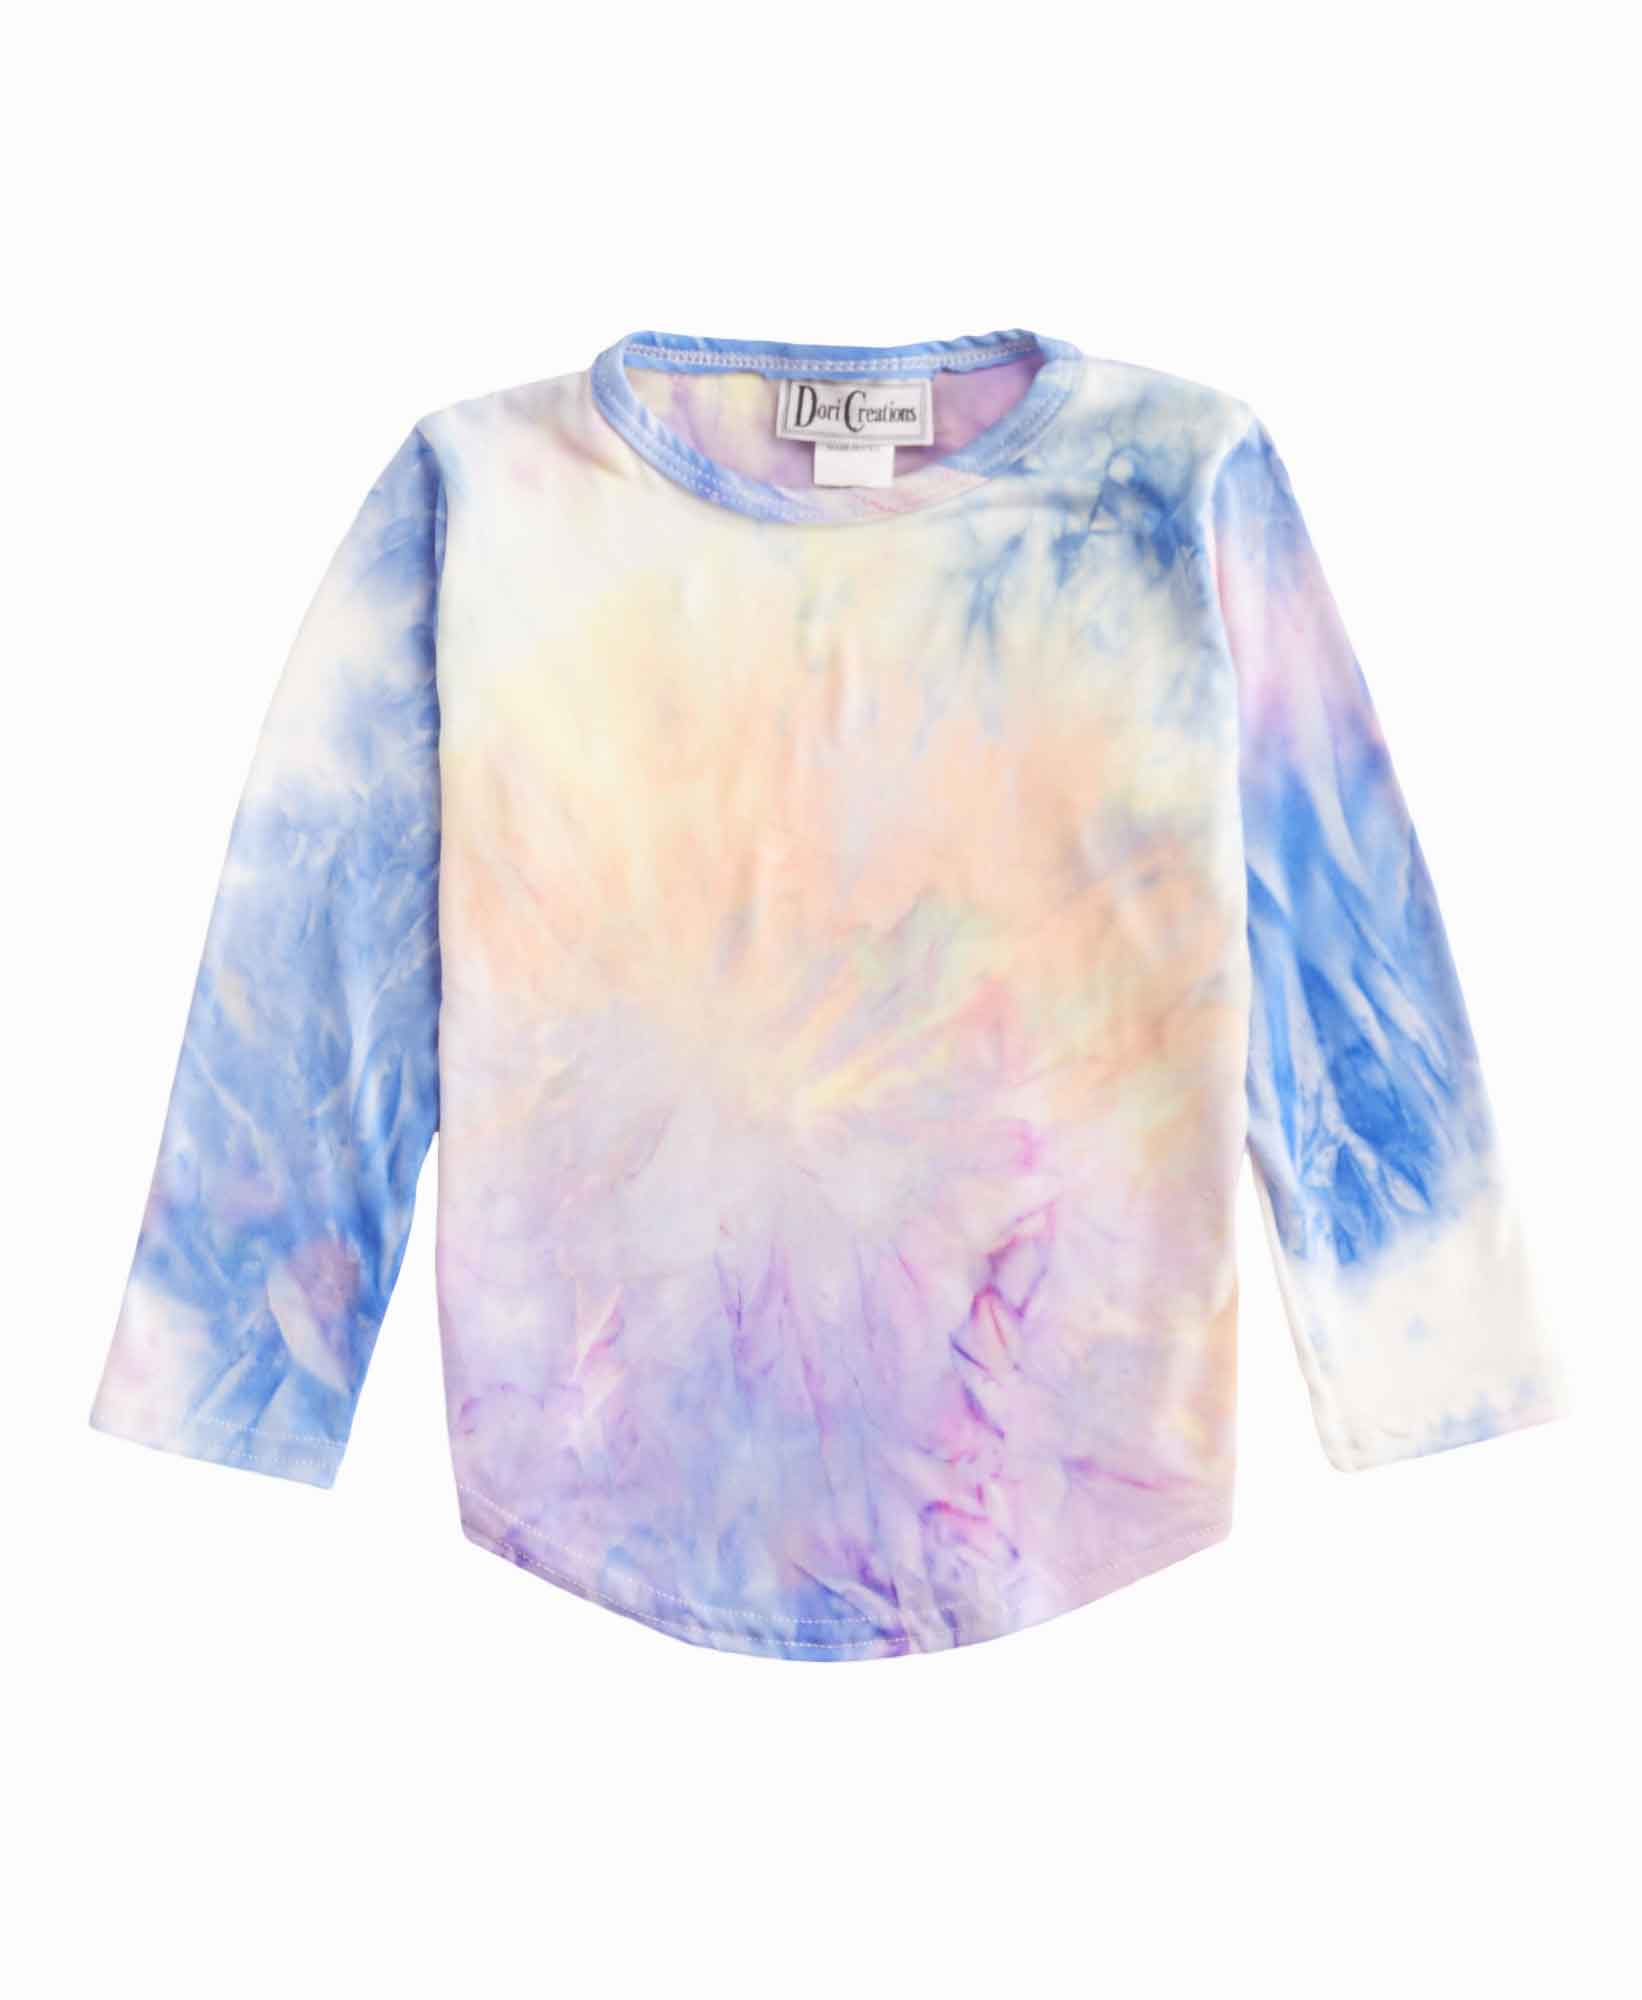 Dori Creations Tie Dye Long Sleeve Tee